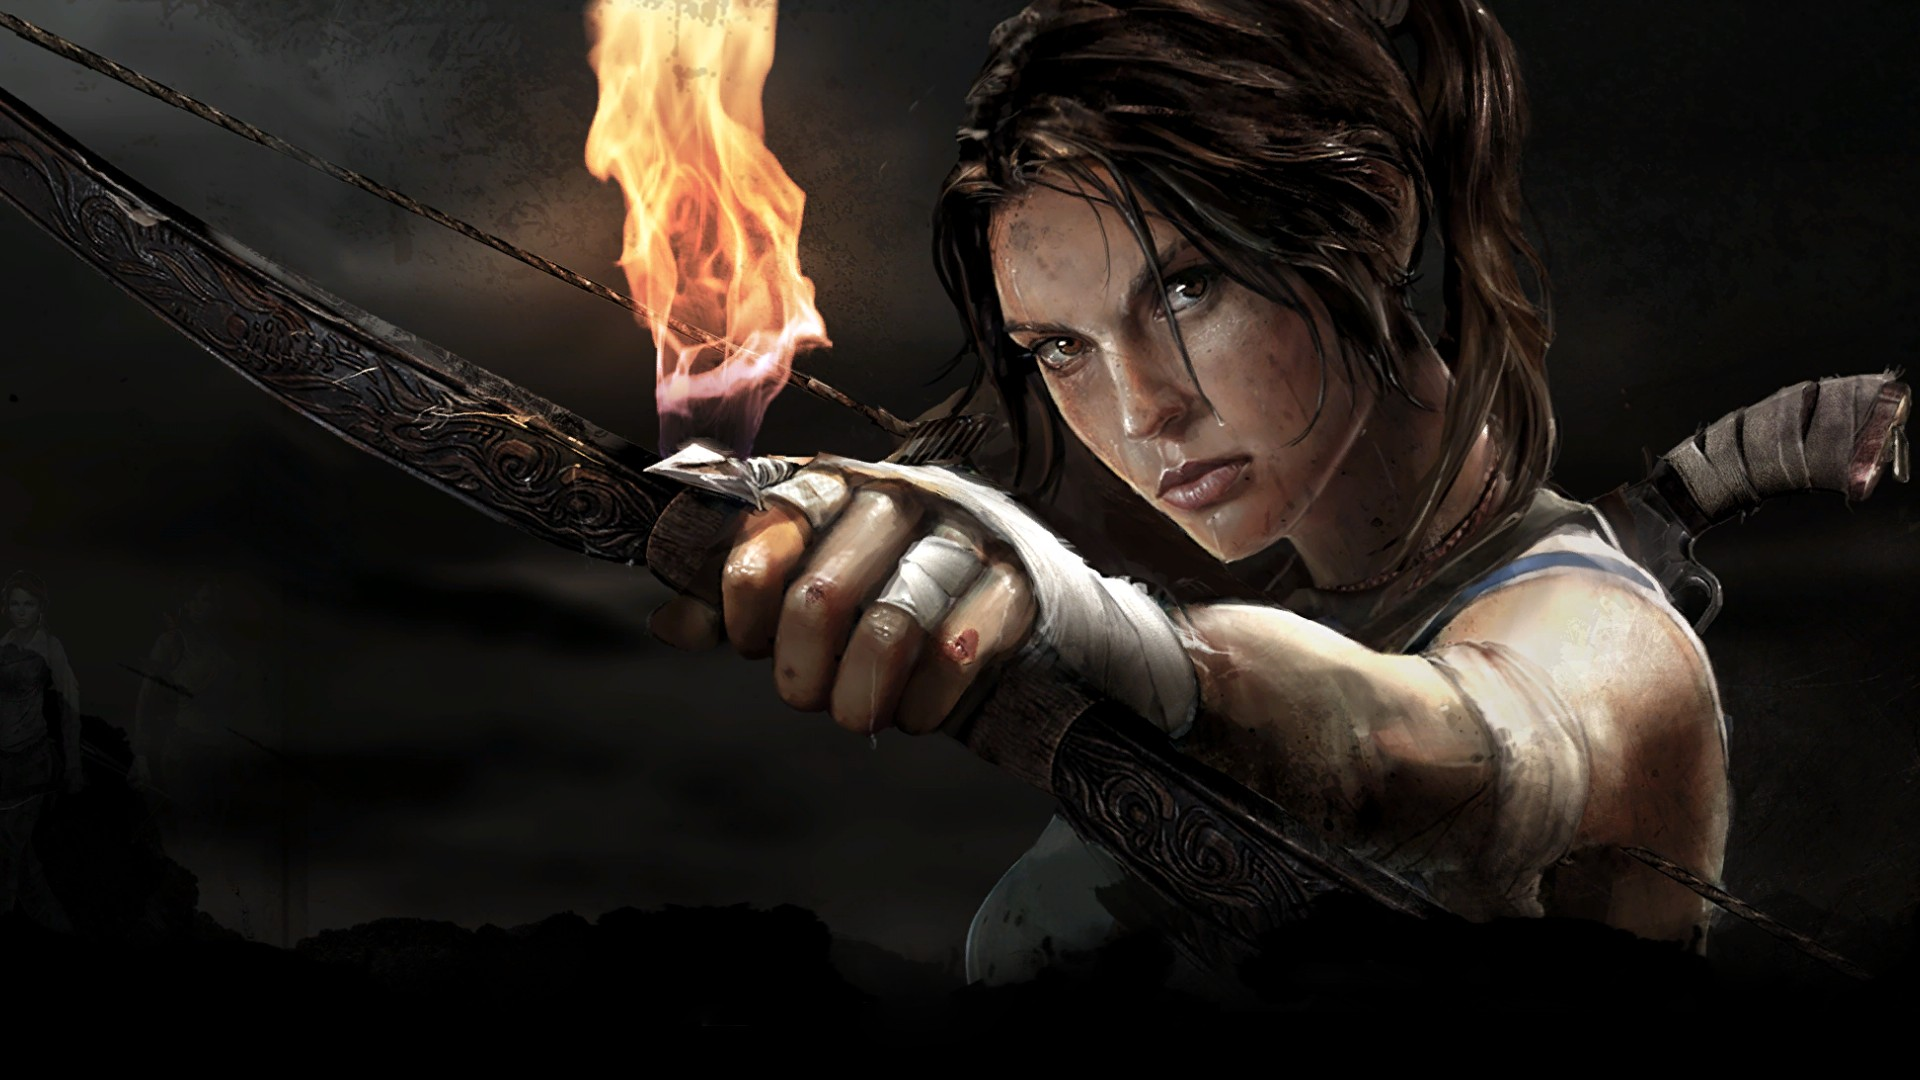 Lara Croft Wallpaper Download Free Beautiful Backgrounds For